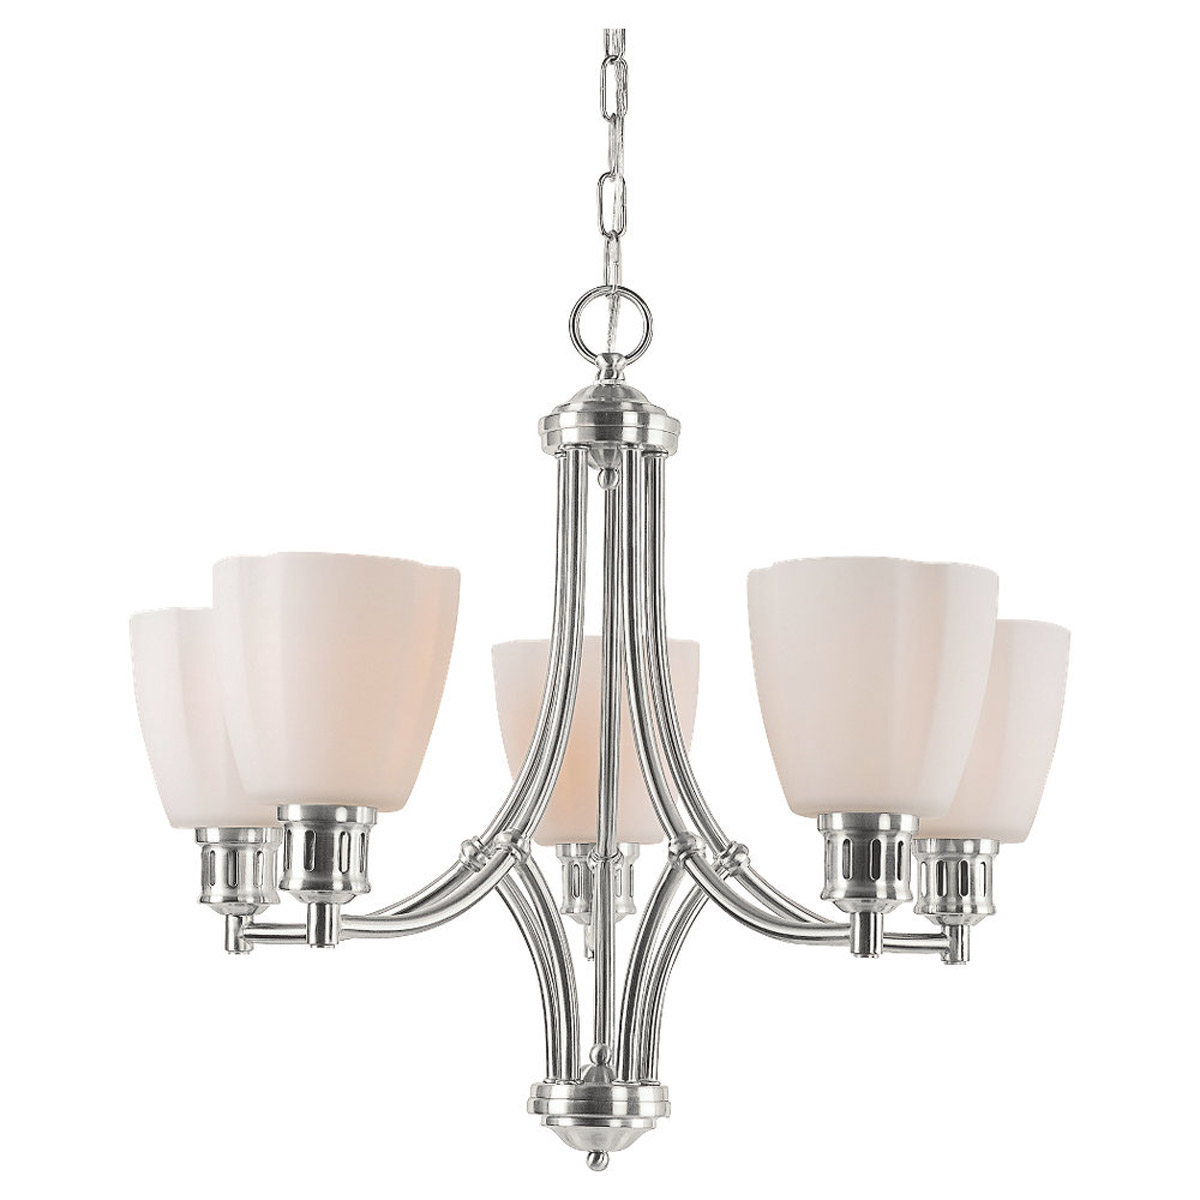 Sea Gull Lighting Century 5 Light Chandelier in Brushed Nickel 31475-962 photo